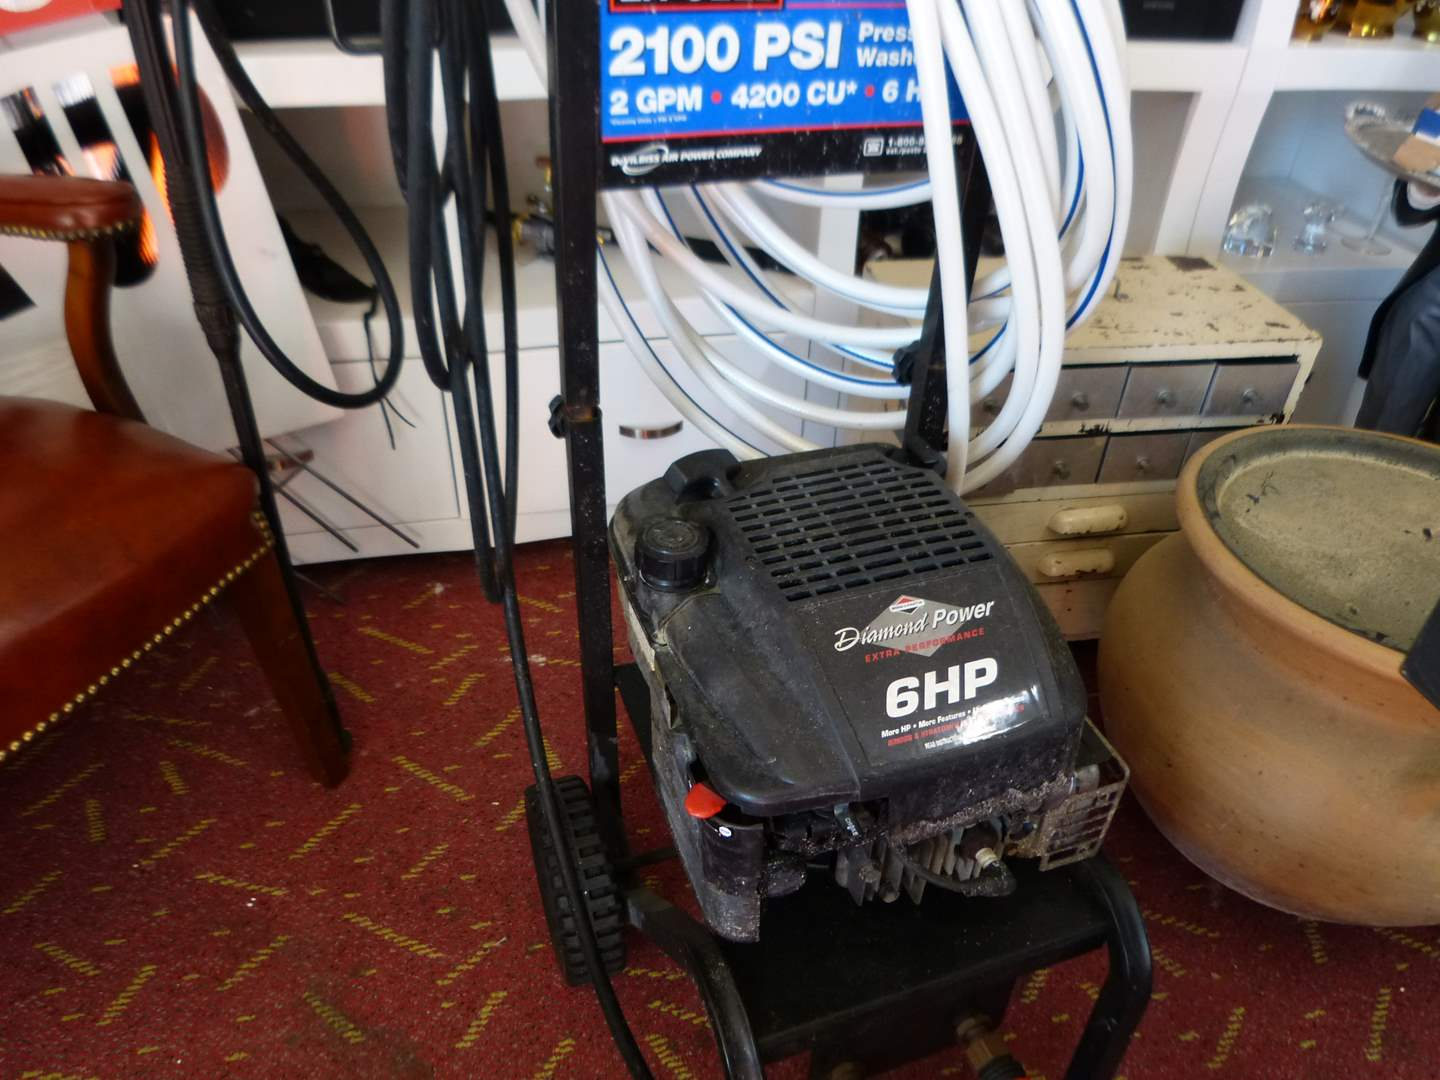 Lot # 298  EC-CELL 2100 PSI 6HP power washer (not tested but strong compression)